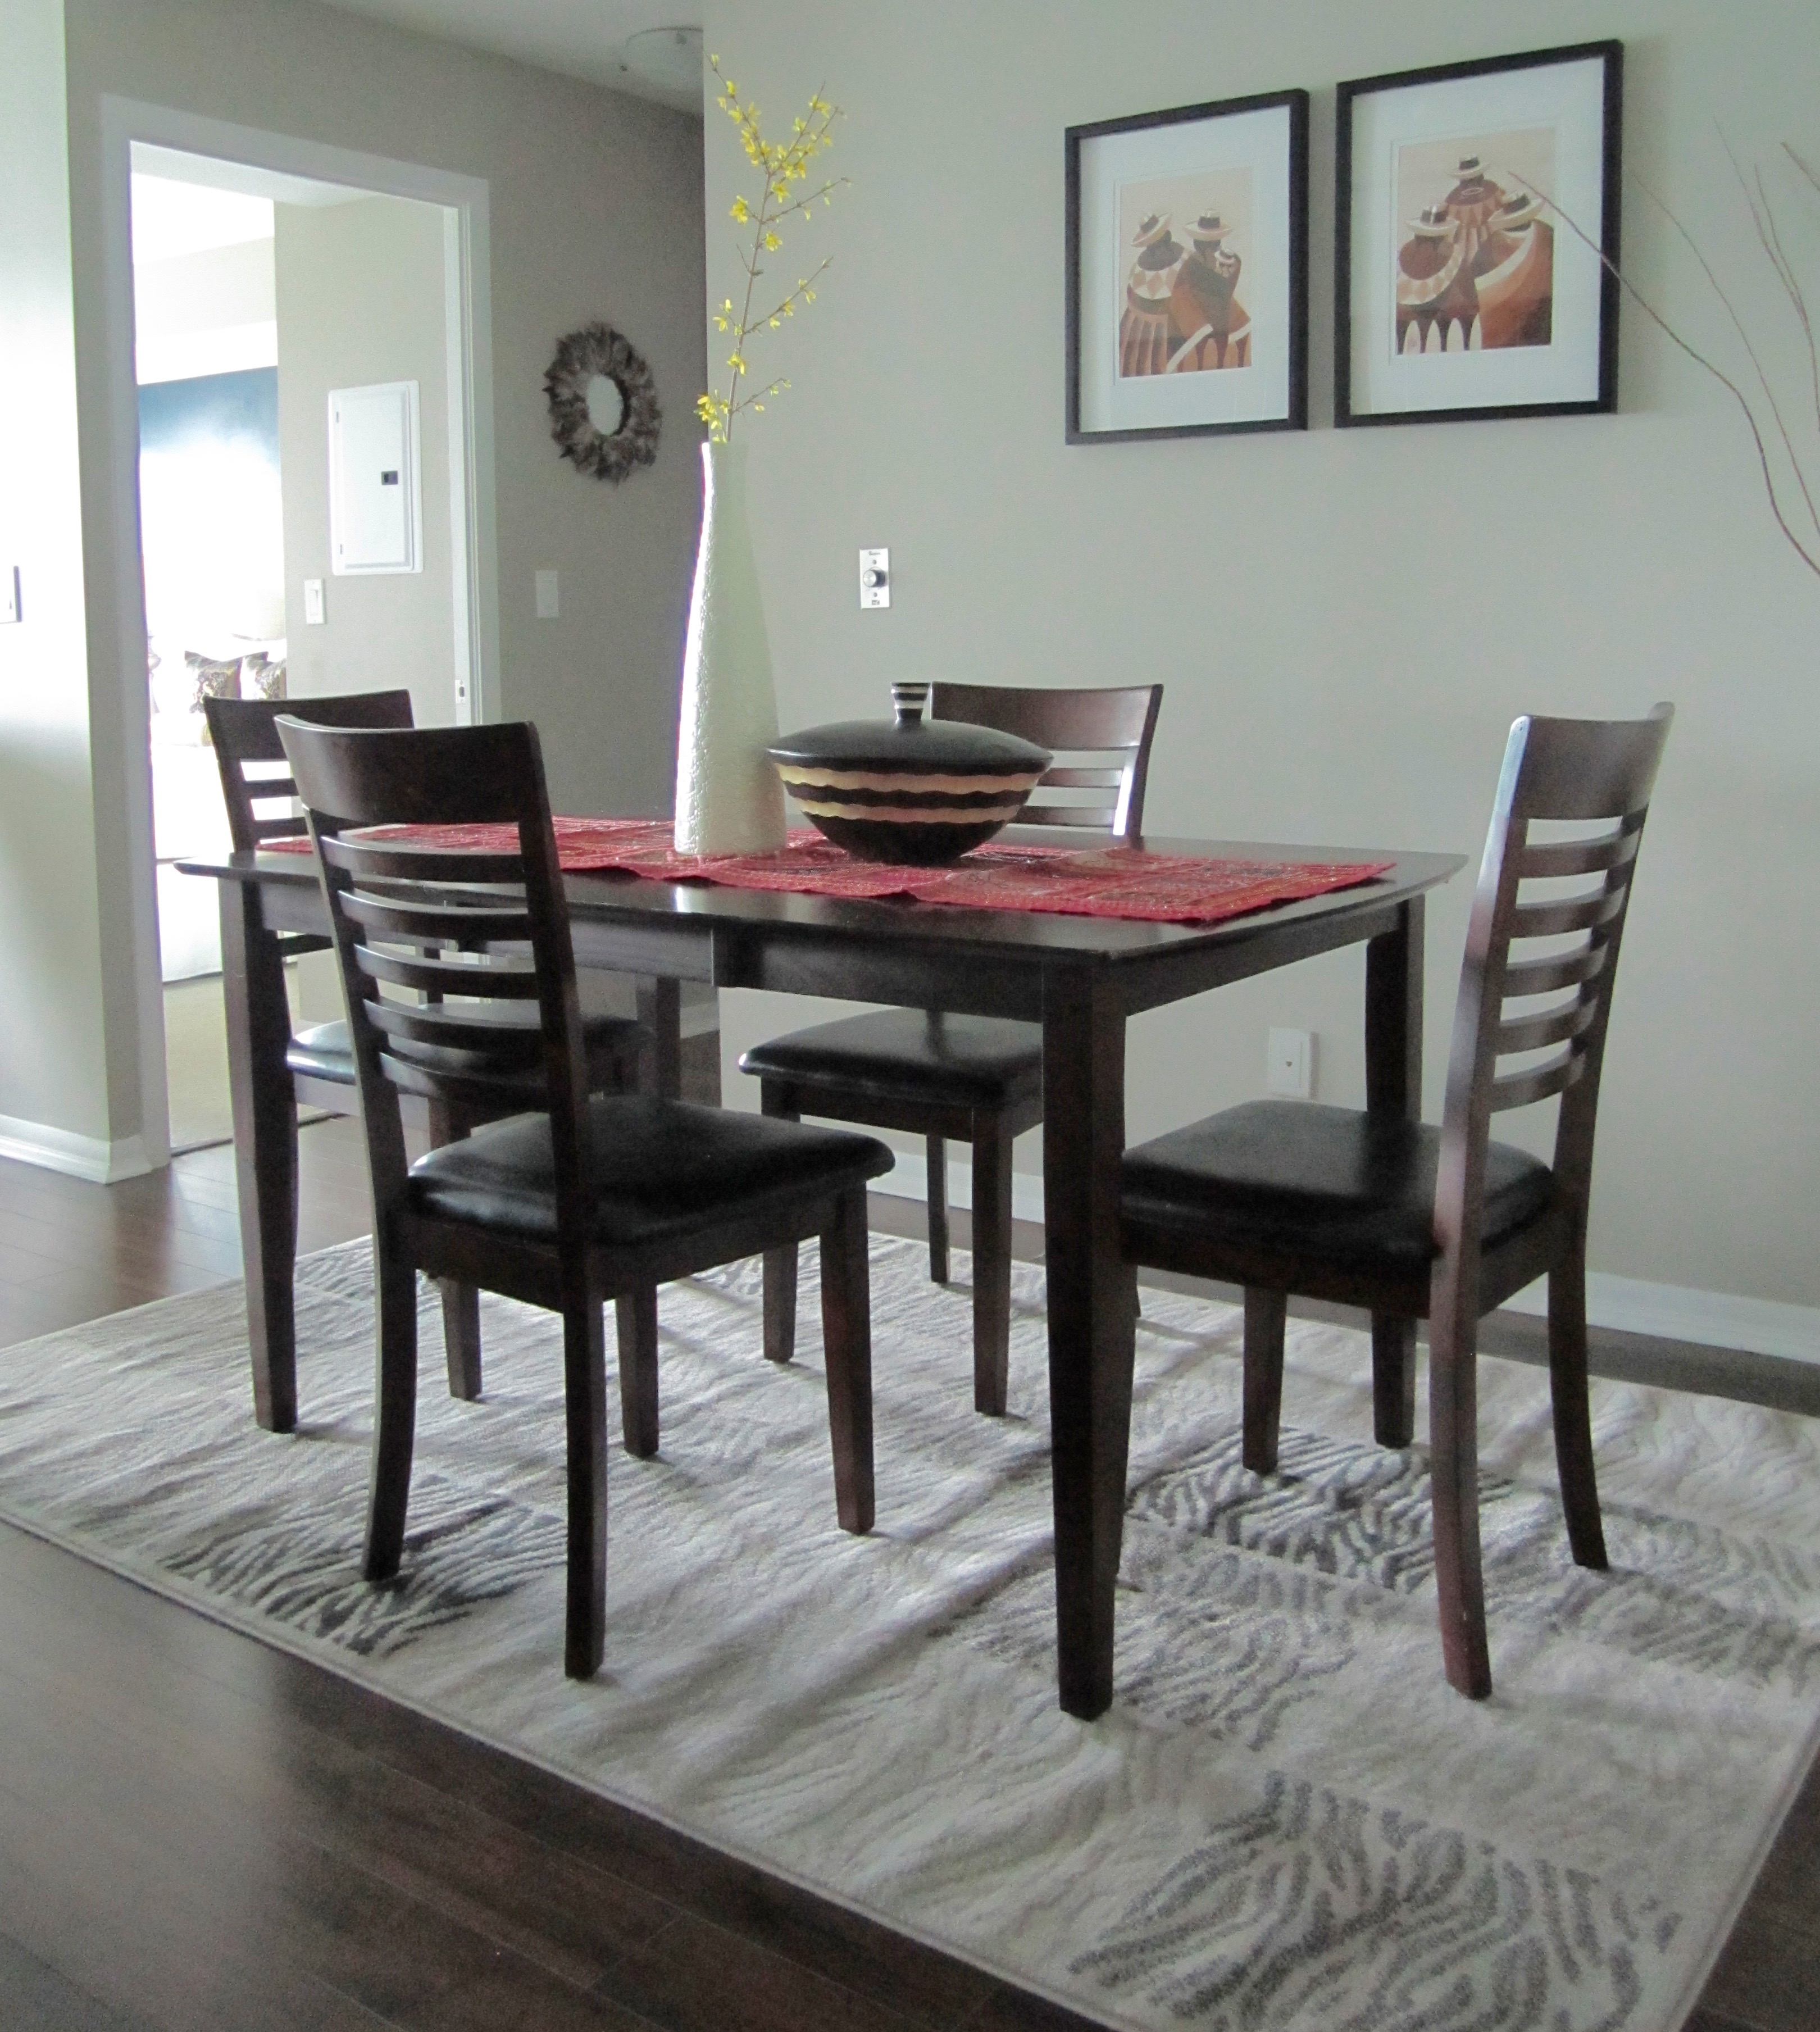 I Bought This Dining Set About 5 Years Ago. The Chairs Had A Vinyl  Upholstery Cover On The Seat Which I Thought Was Most Beneficial For An  Easy Wipe Down ...